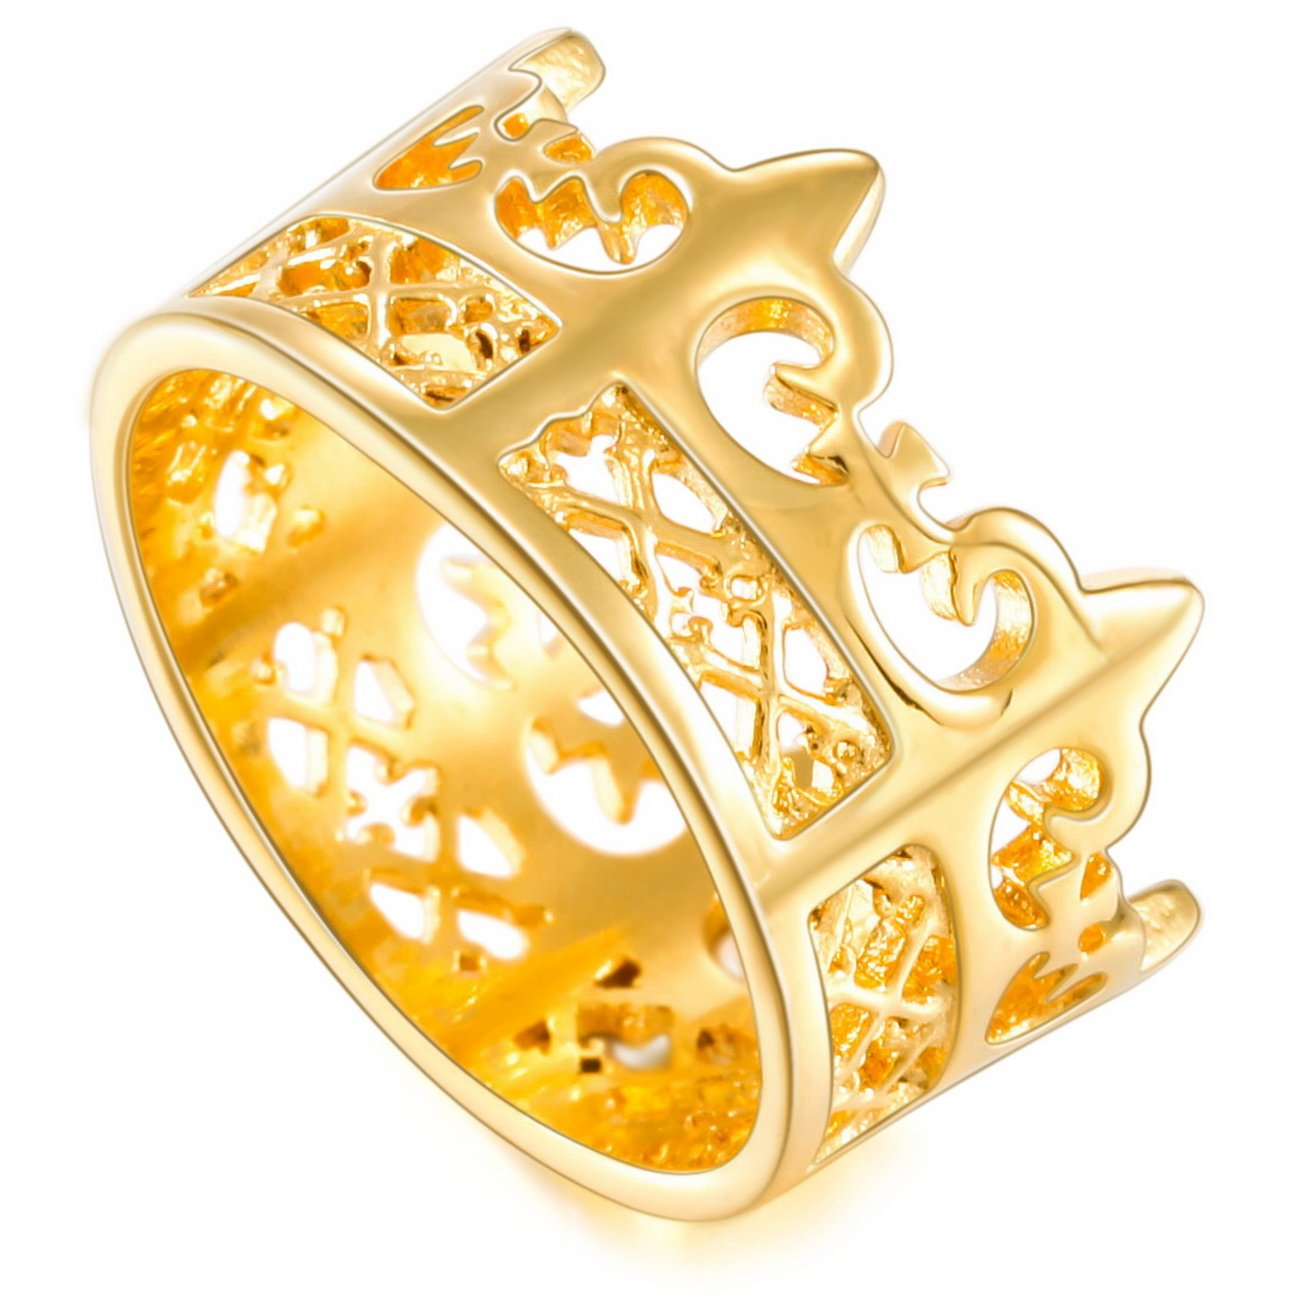 MOWOM Gold Tone Stainless Steel Band Ring Royal King Crown ca5040038-parent